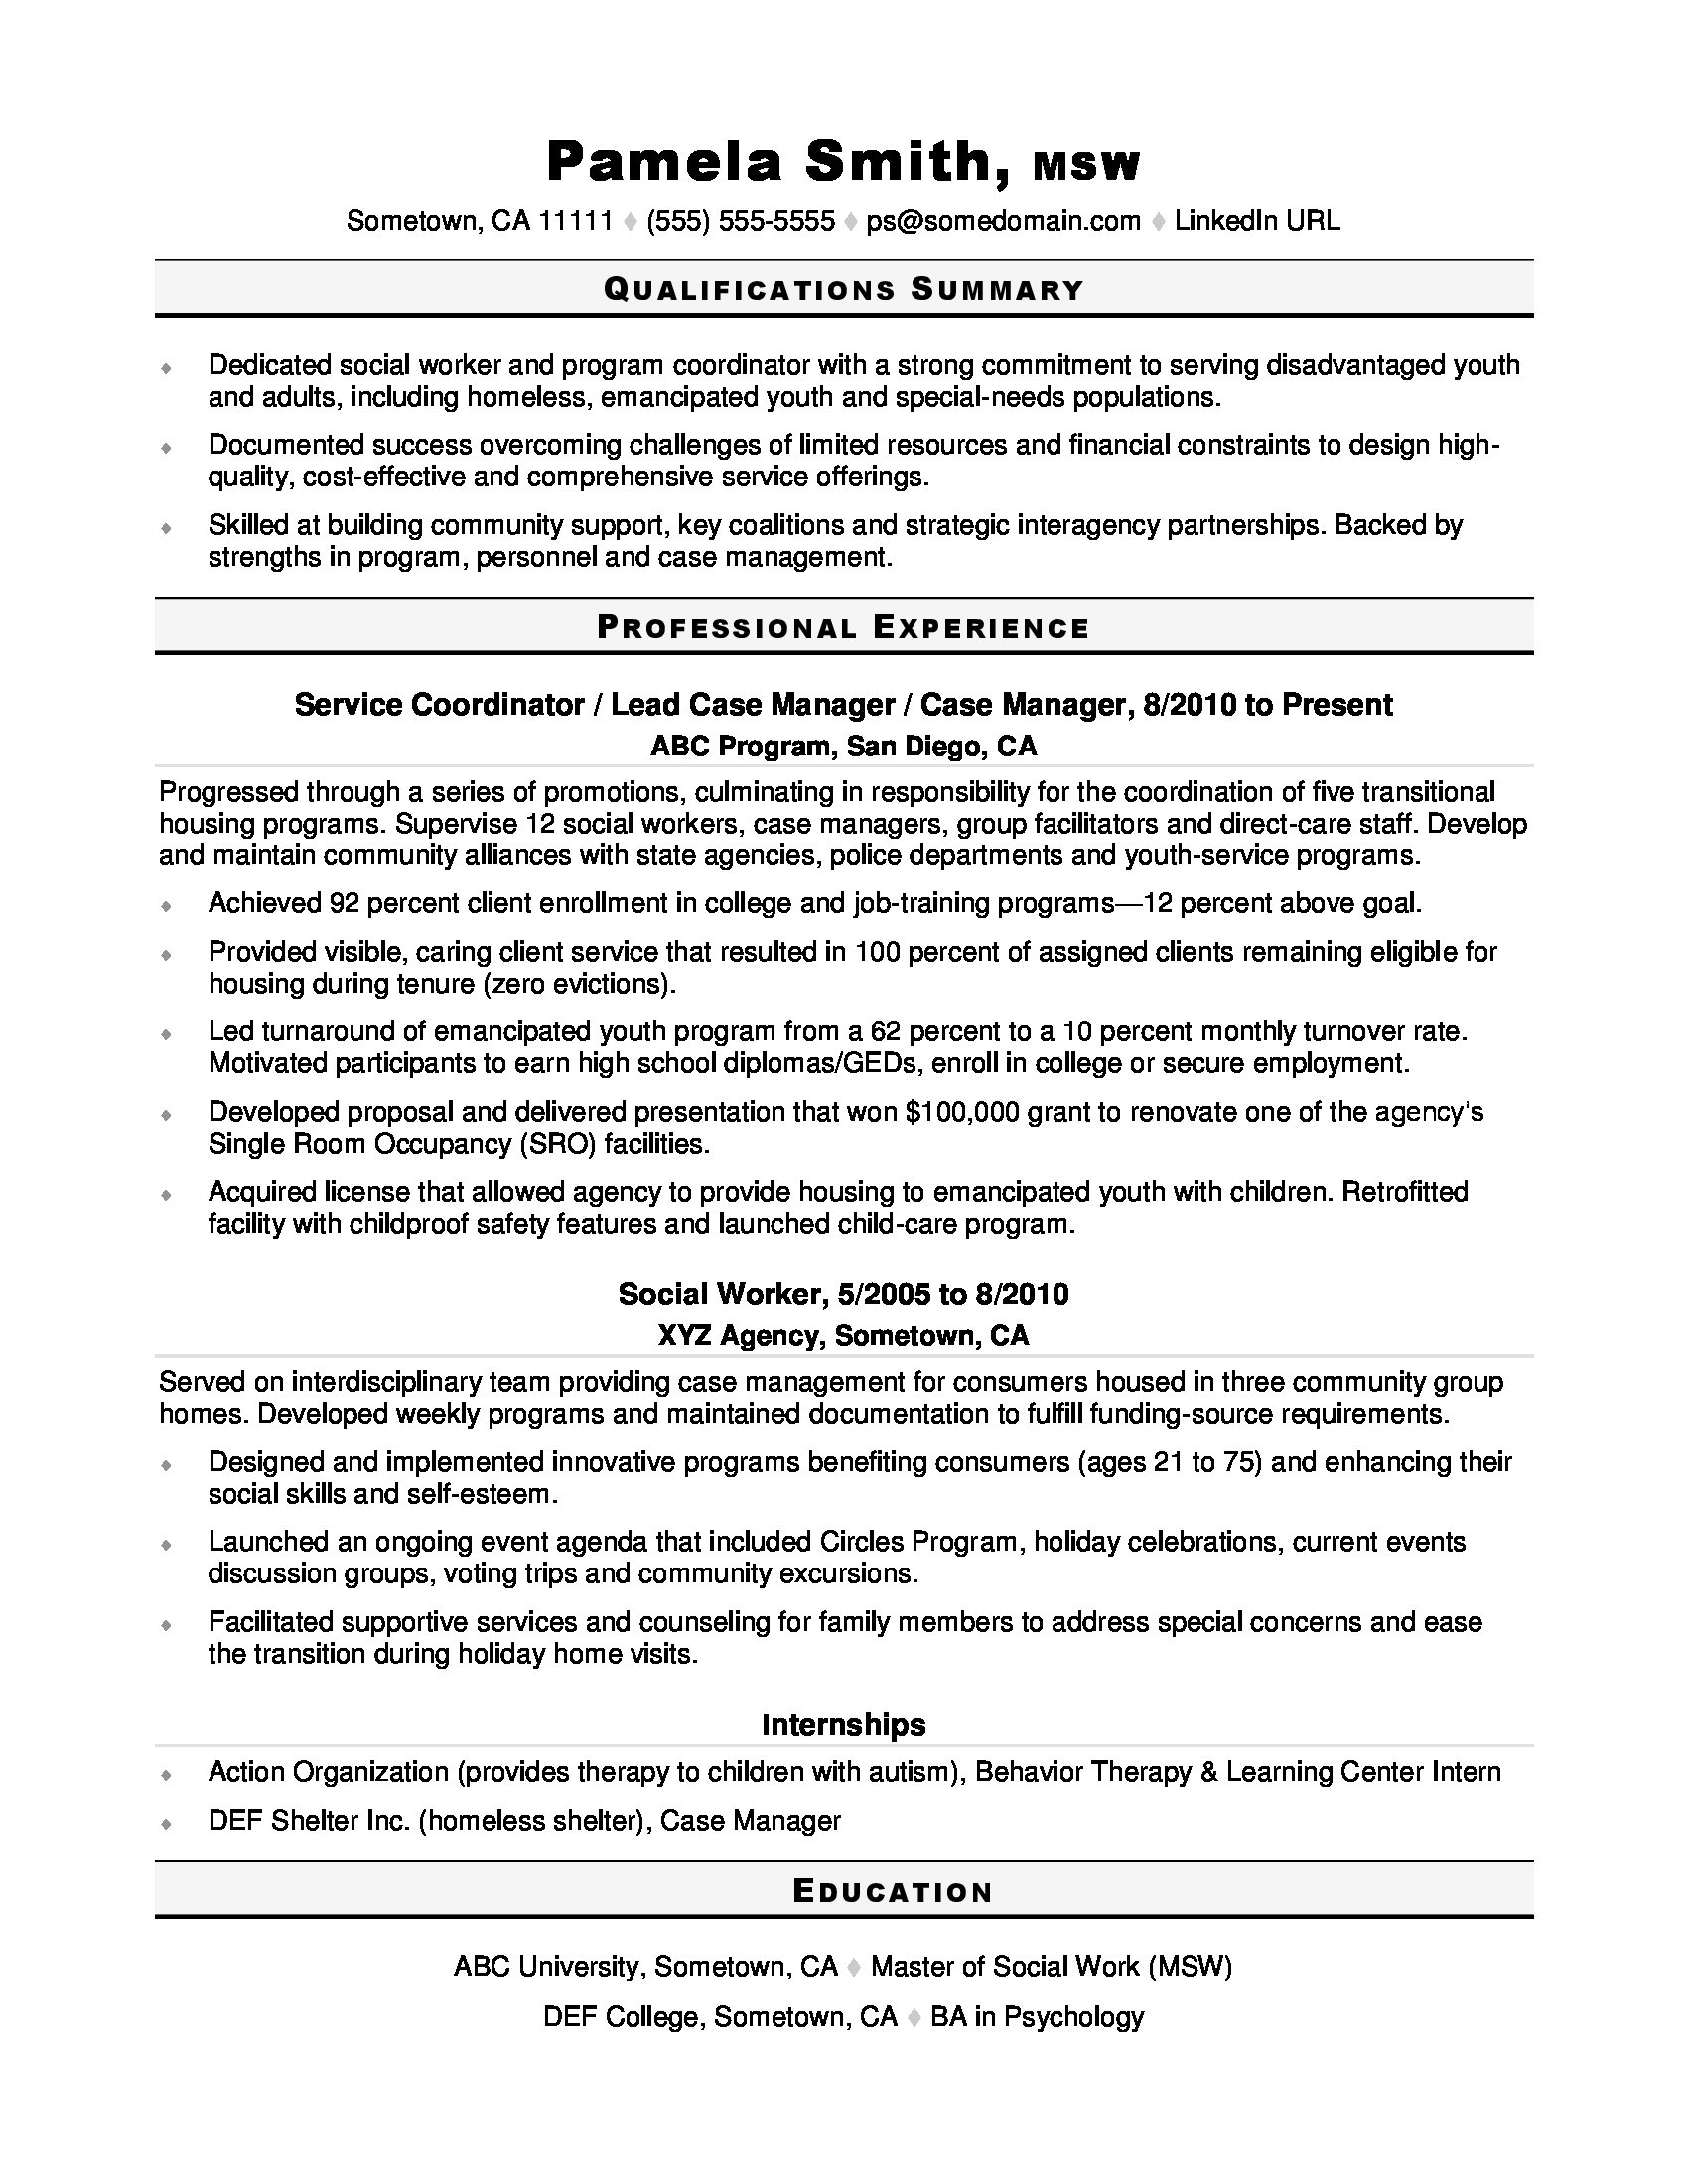 social worker resume sample monster medical examples printable professional services Resume Medical Social Worker Resume